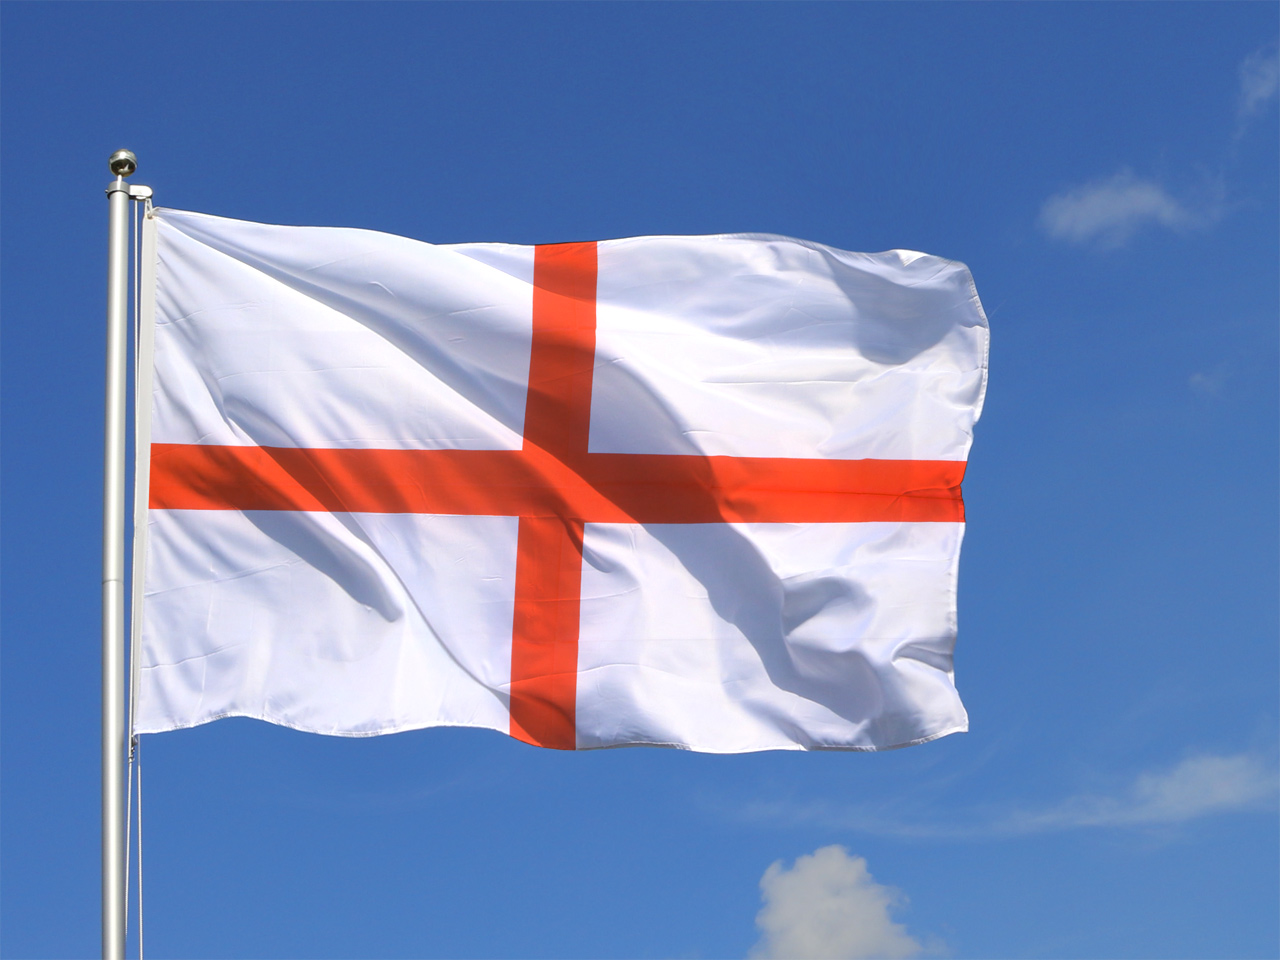 150 M To Ft Large England St George Flag 5x8 Ft Royal Flags